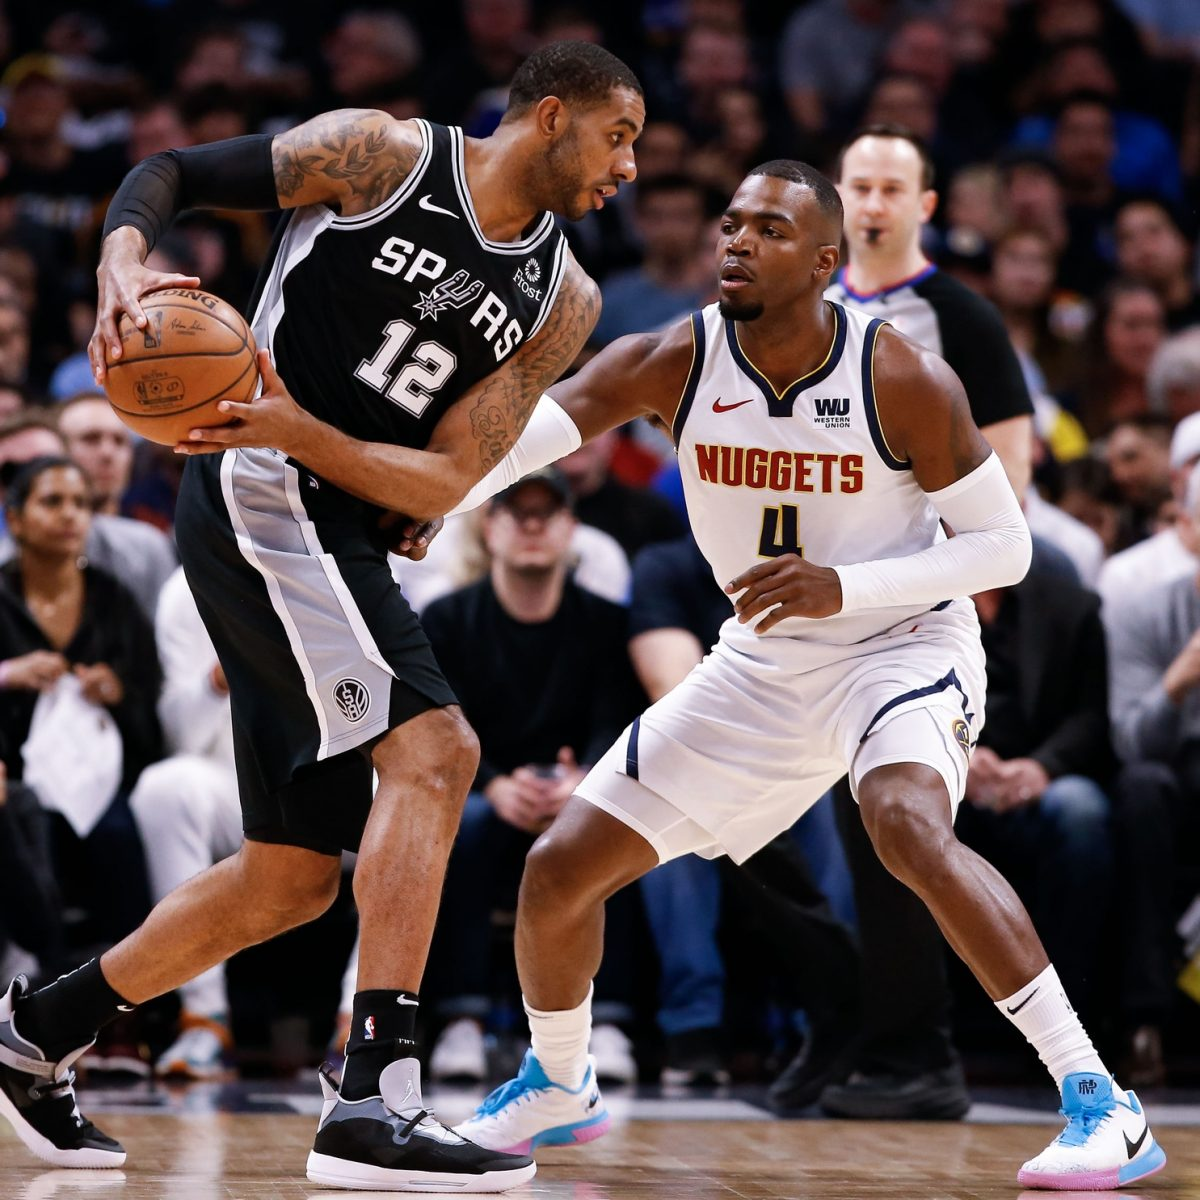 Denver Nuggets Vs. San Antonio Spurs Prediction, Preview